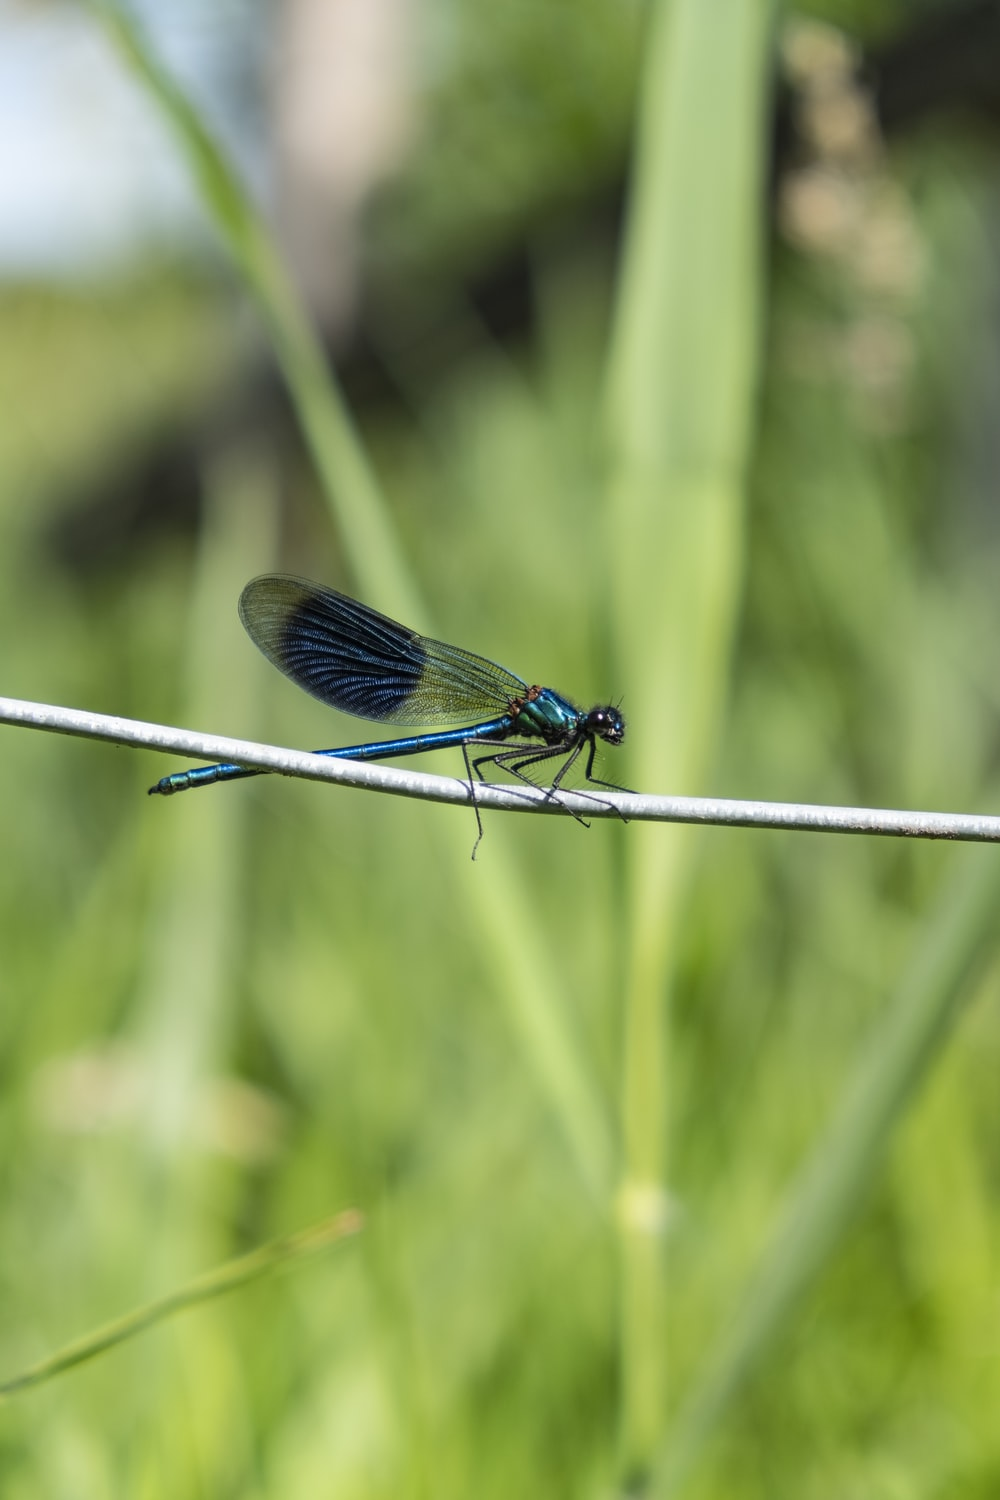 green dragonfly in a stick during daytime close-up photography